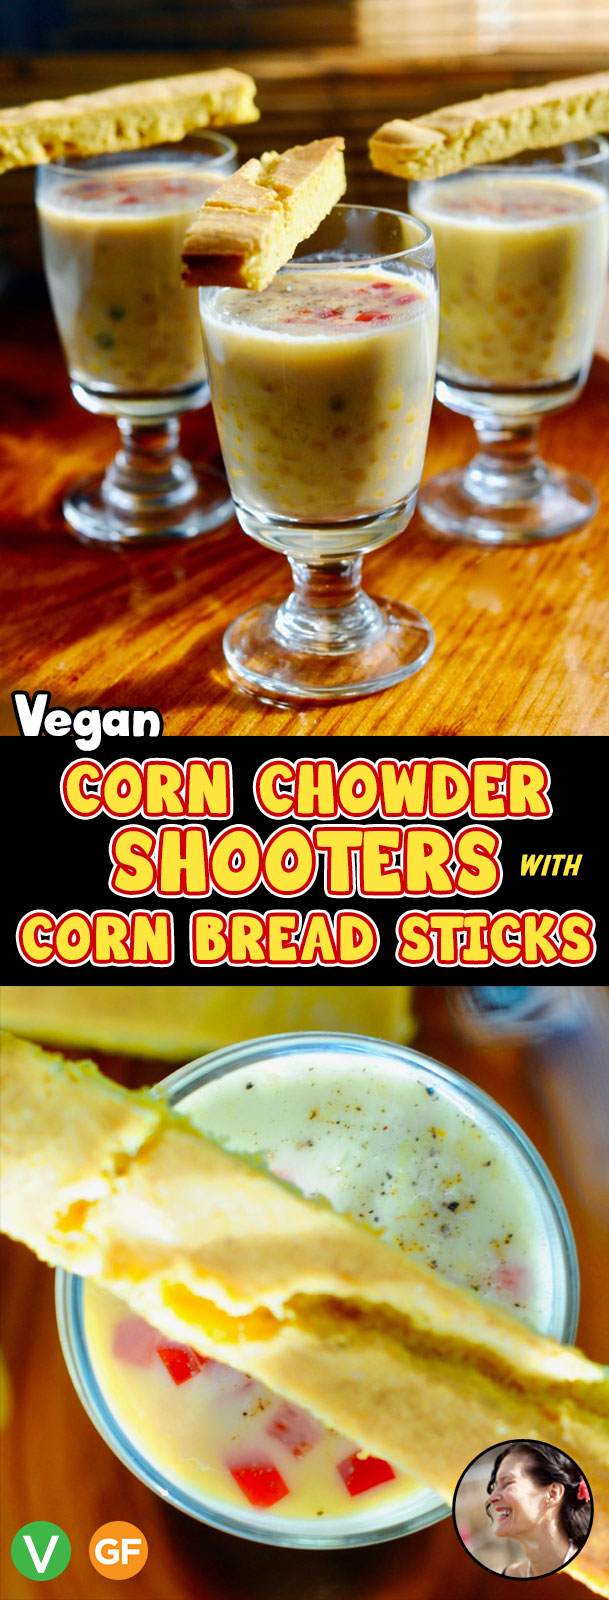 Vegan Corn Chowder Shooters with Cornbread Sticks (Gluten Free)  for your next party. Simple, Make ahead.